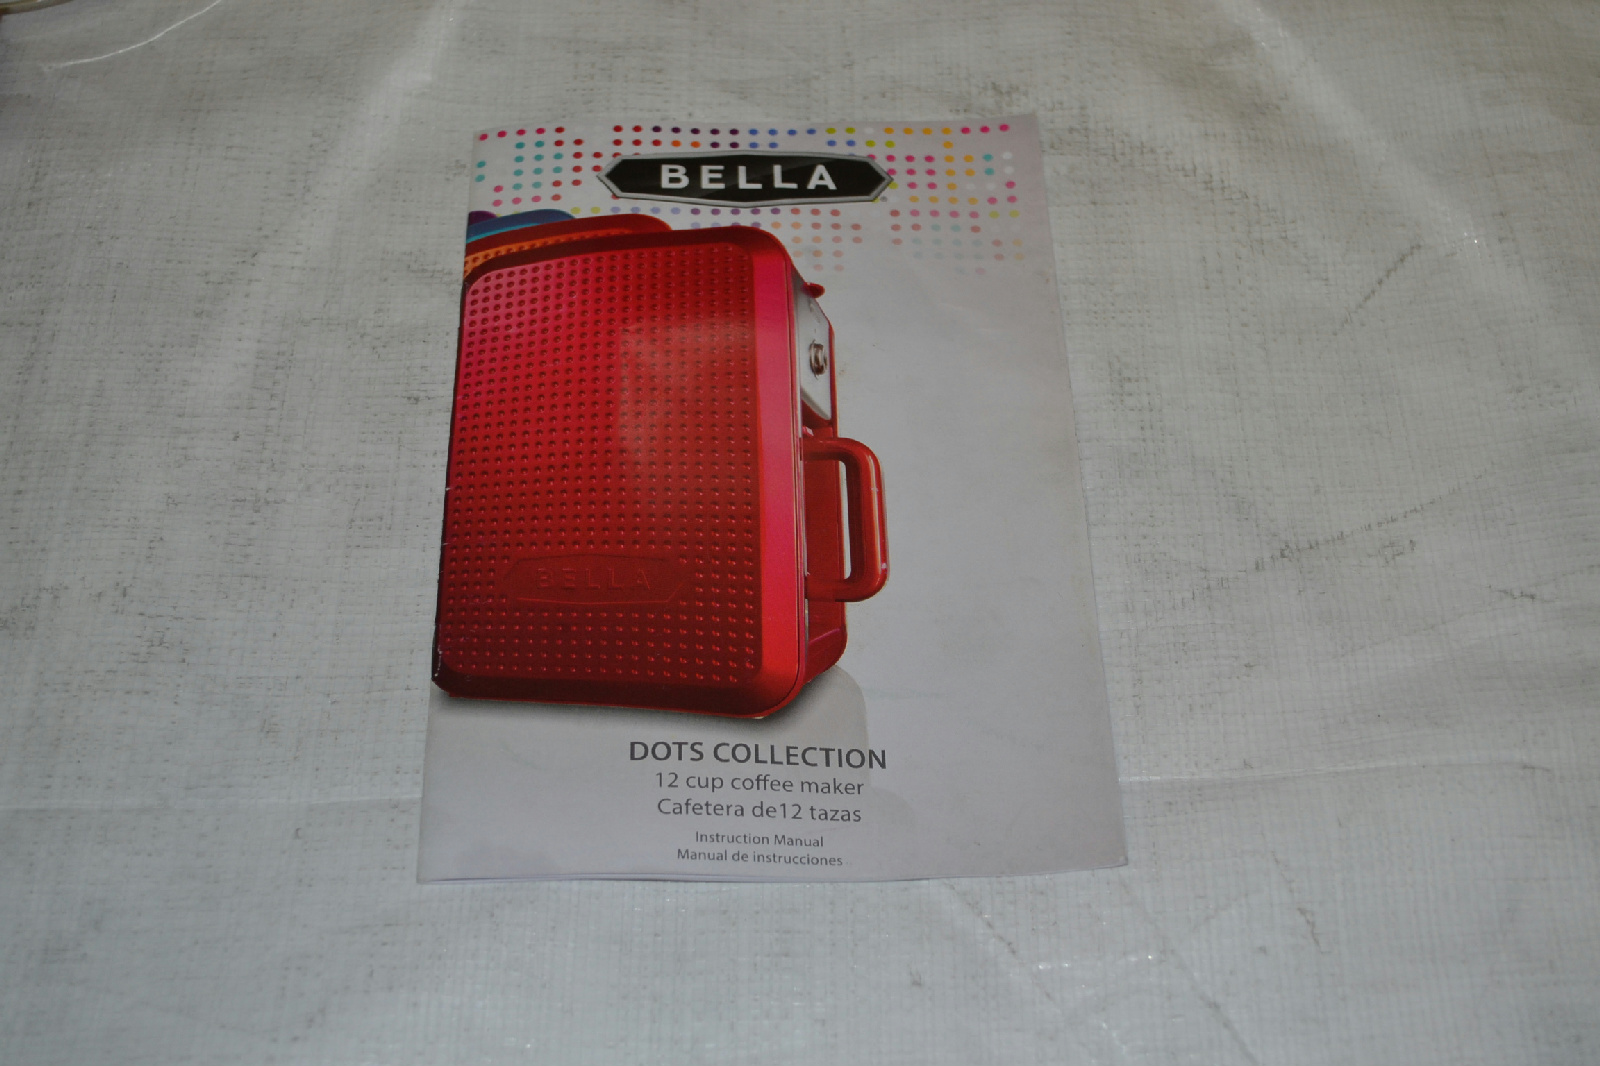 Bella Dots Coffee Maker Red : Bella 13700 Dots Collection 12 Cup Coffee Maker Red eBay